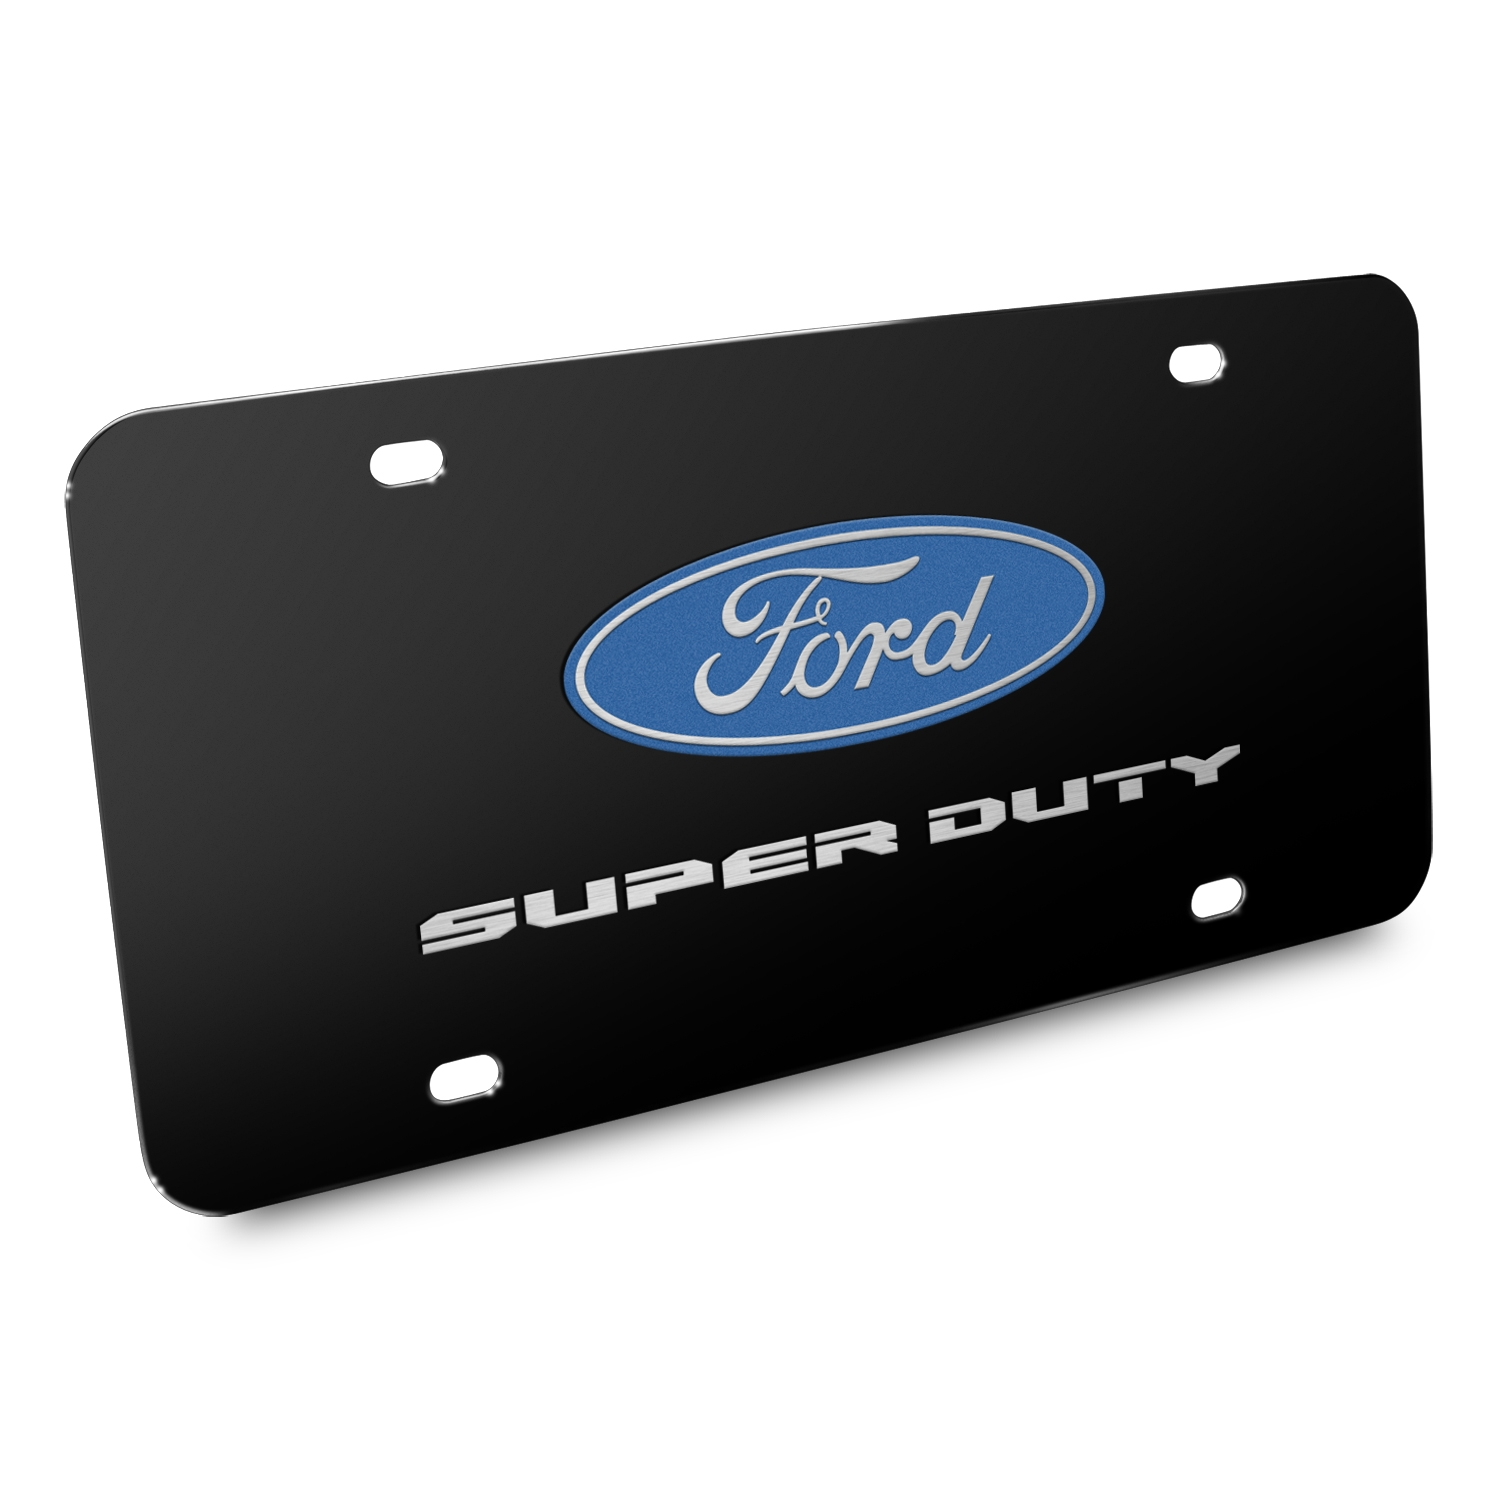 Ford Super-Duty 3D Dual Logo Black Stainless Steel License Plate